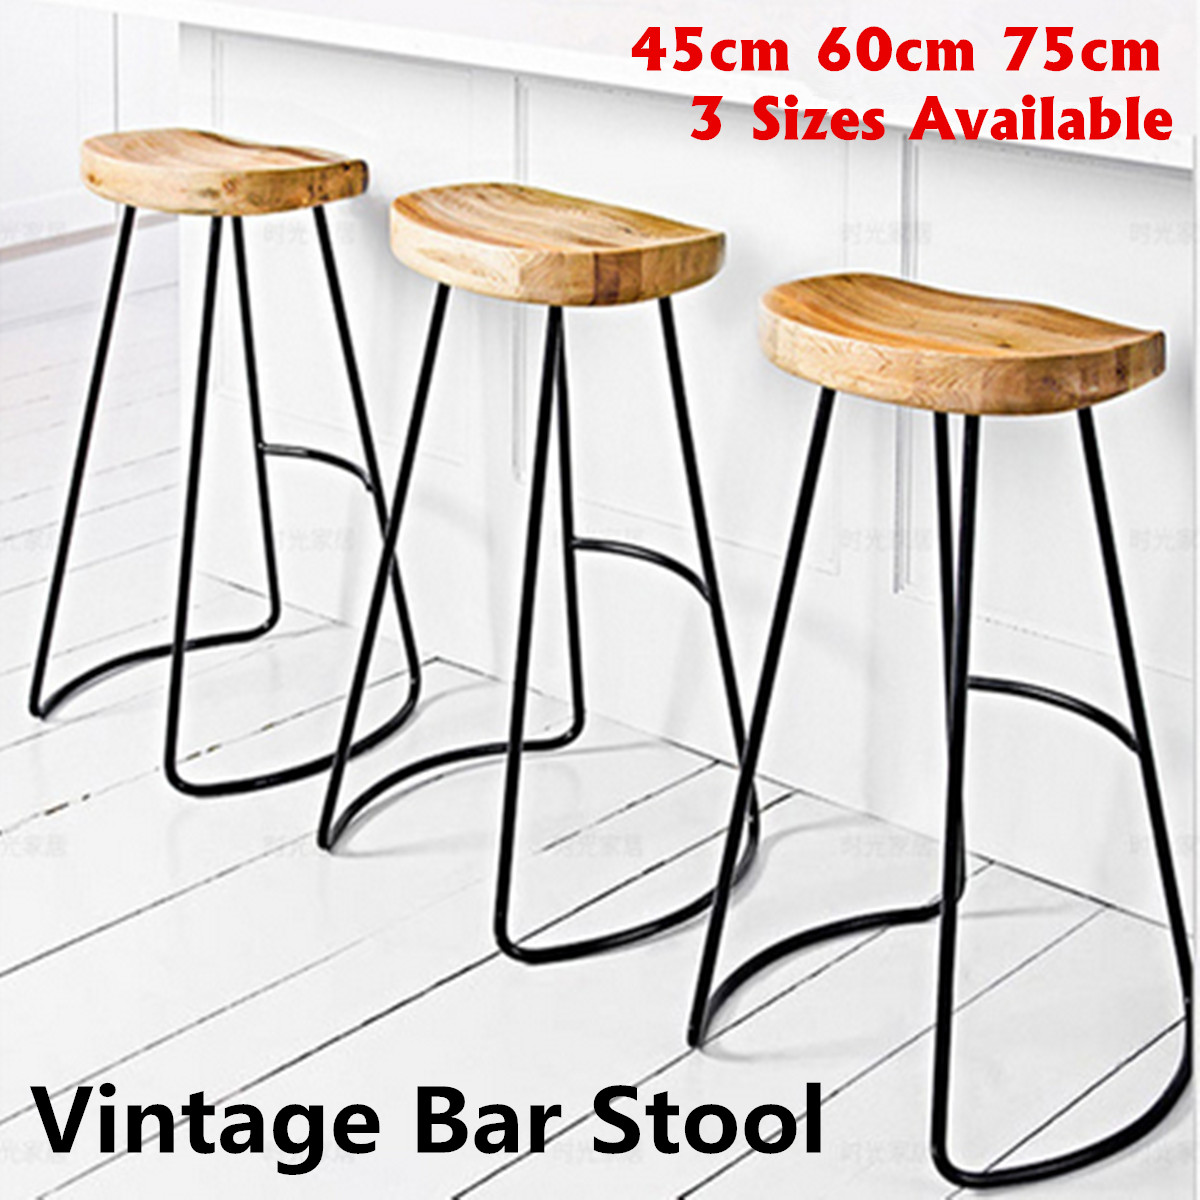 Vintage Industrial Bar Stool Retro Counter Seat Retro Pub Kitchen Metal Wood Chair Outdoor Bar Furniture Decoration 45/60/75cm(China)